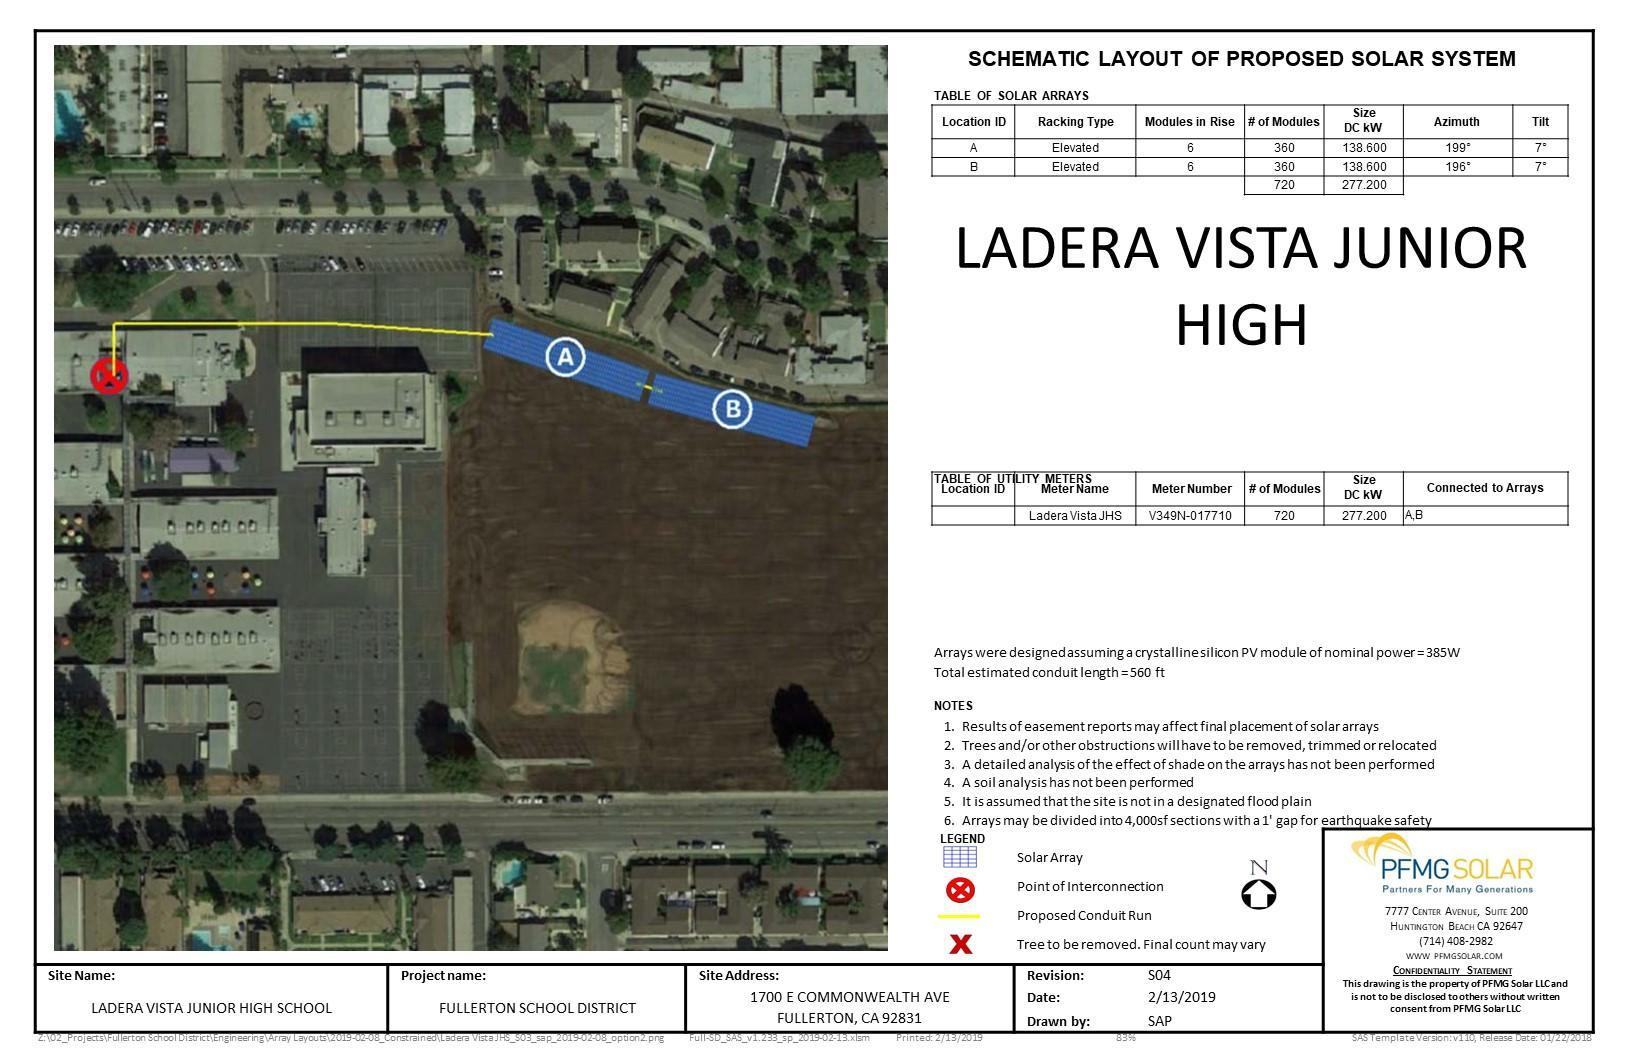 Ladera Vista Junior High Schematic Layout of Proposed Solar System